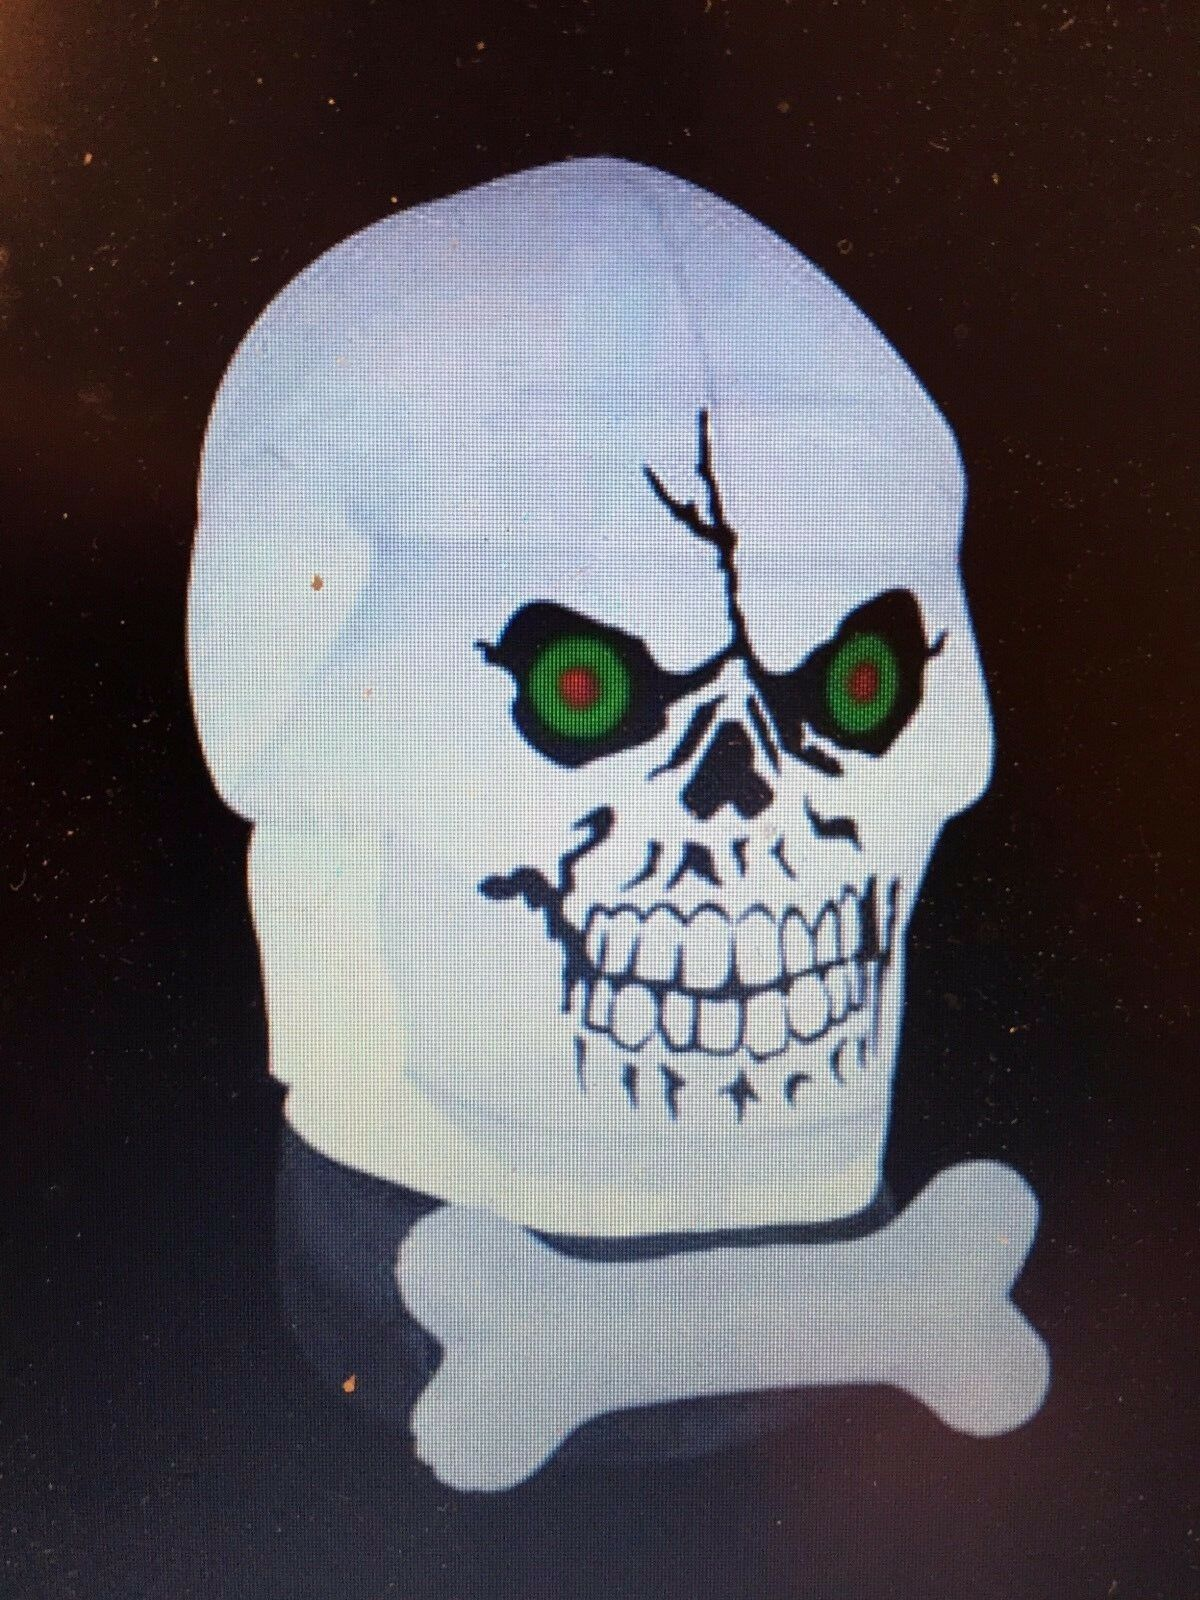 Last Gemmy Halloween 5 1/2' Gotham Skull Lighted Airblown/inflatable Decor